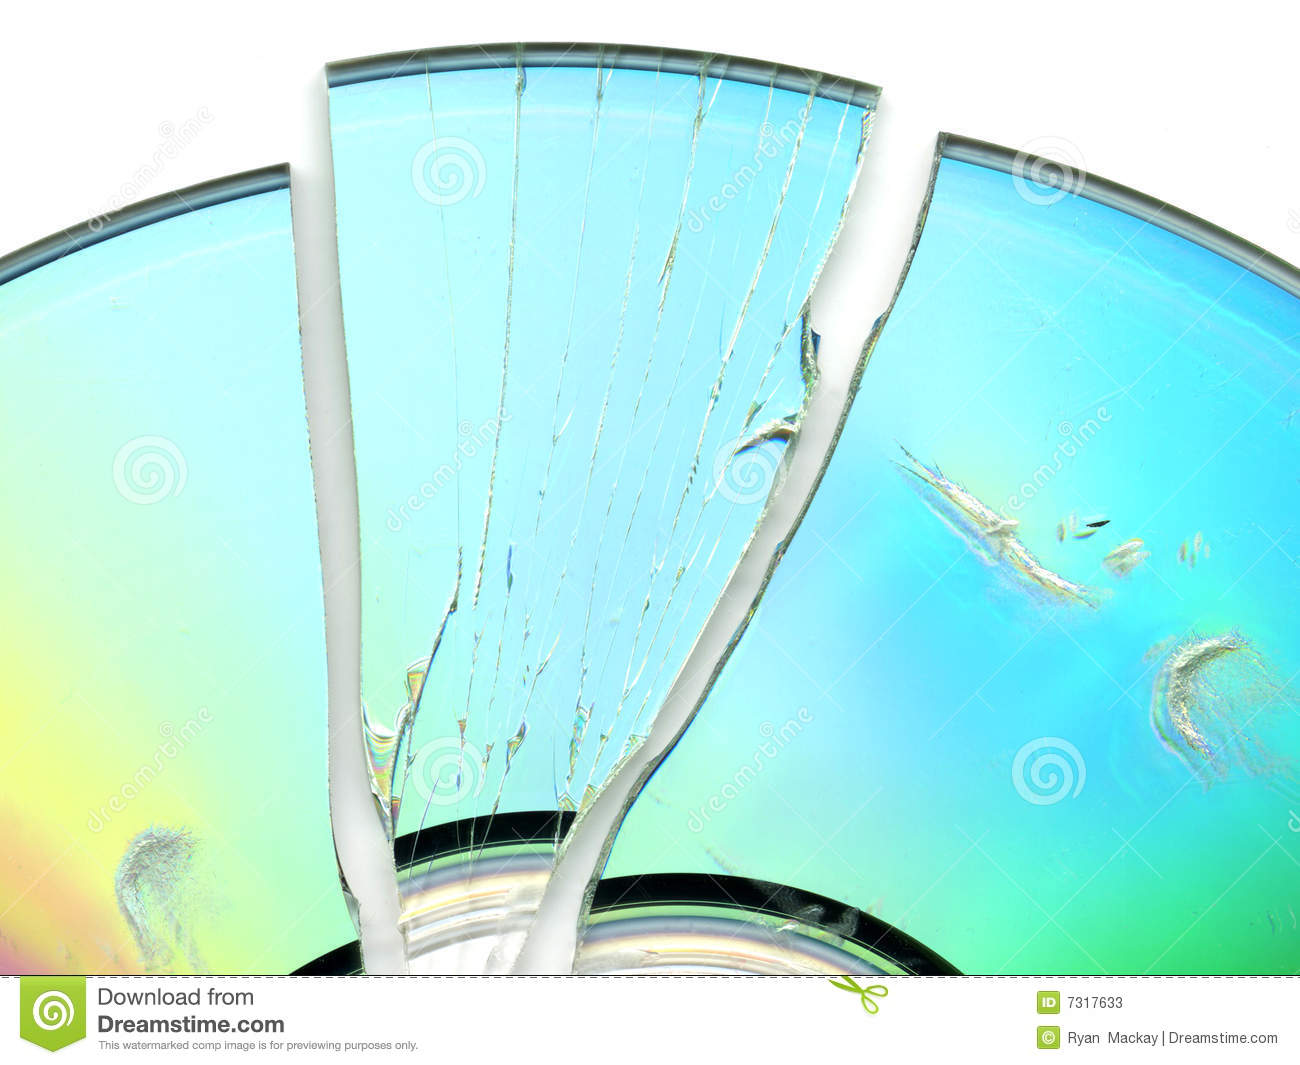 how to fix a broken dvd rom